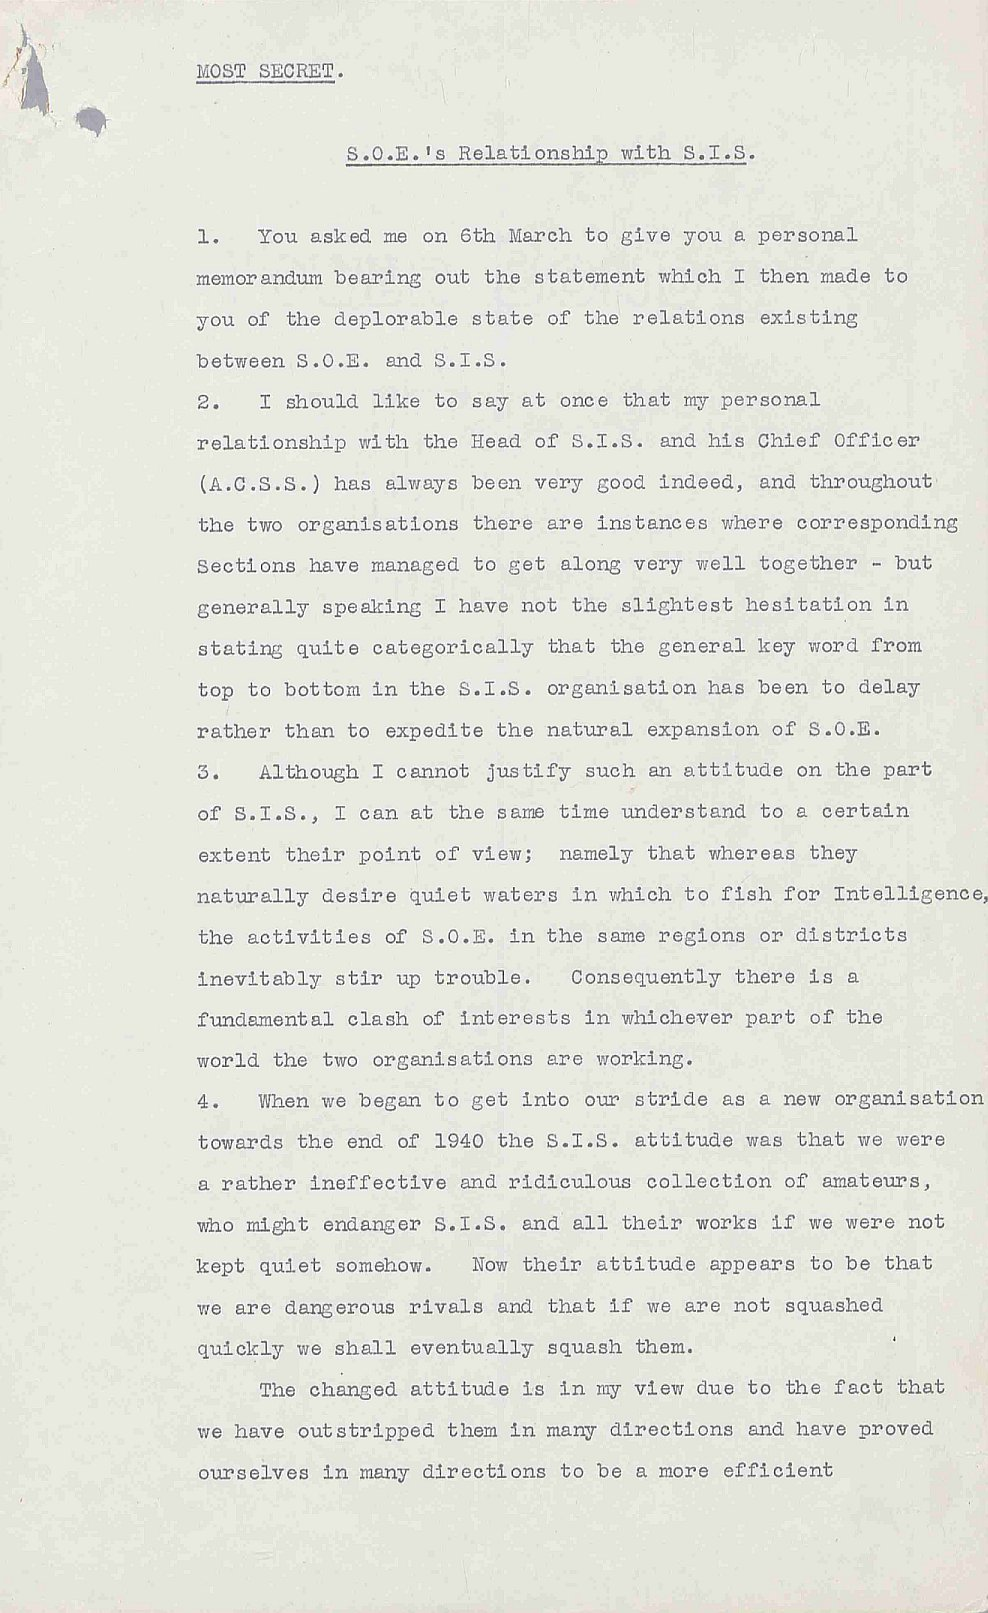 WWII-British-Foreign-Office-Document-2